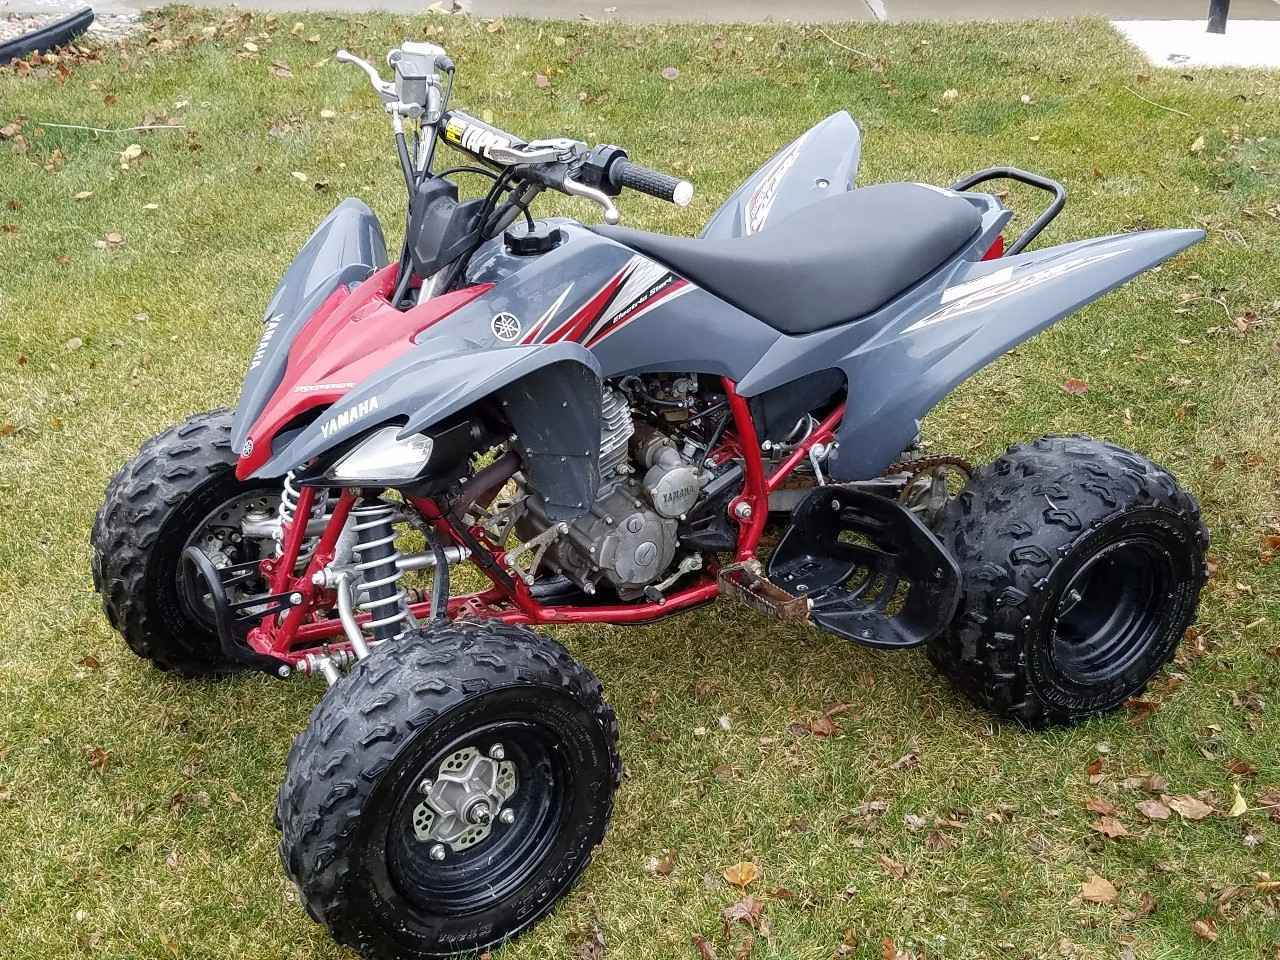 Used 2008 Yamaha RAPTOR 250 ATVs For Sale in Nebraska on ATV Trades